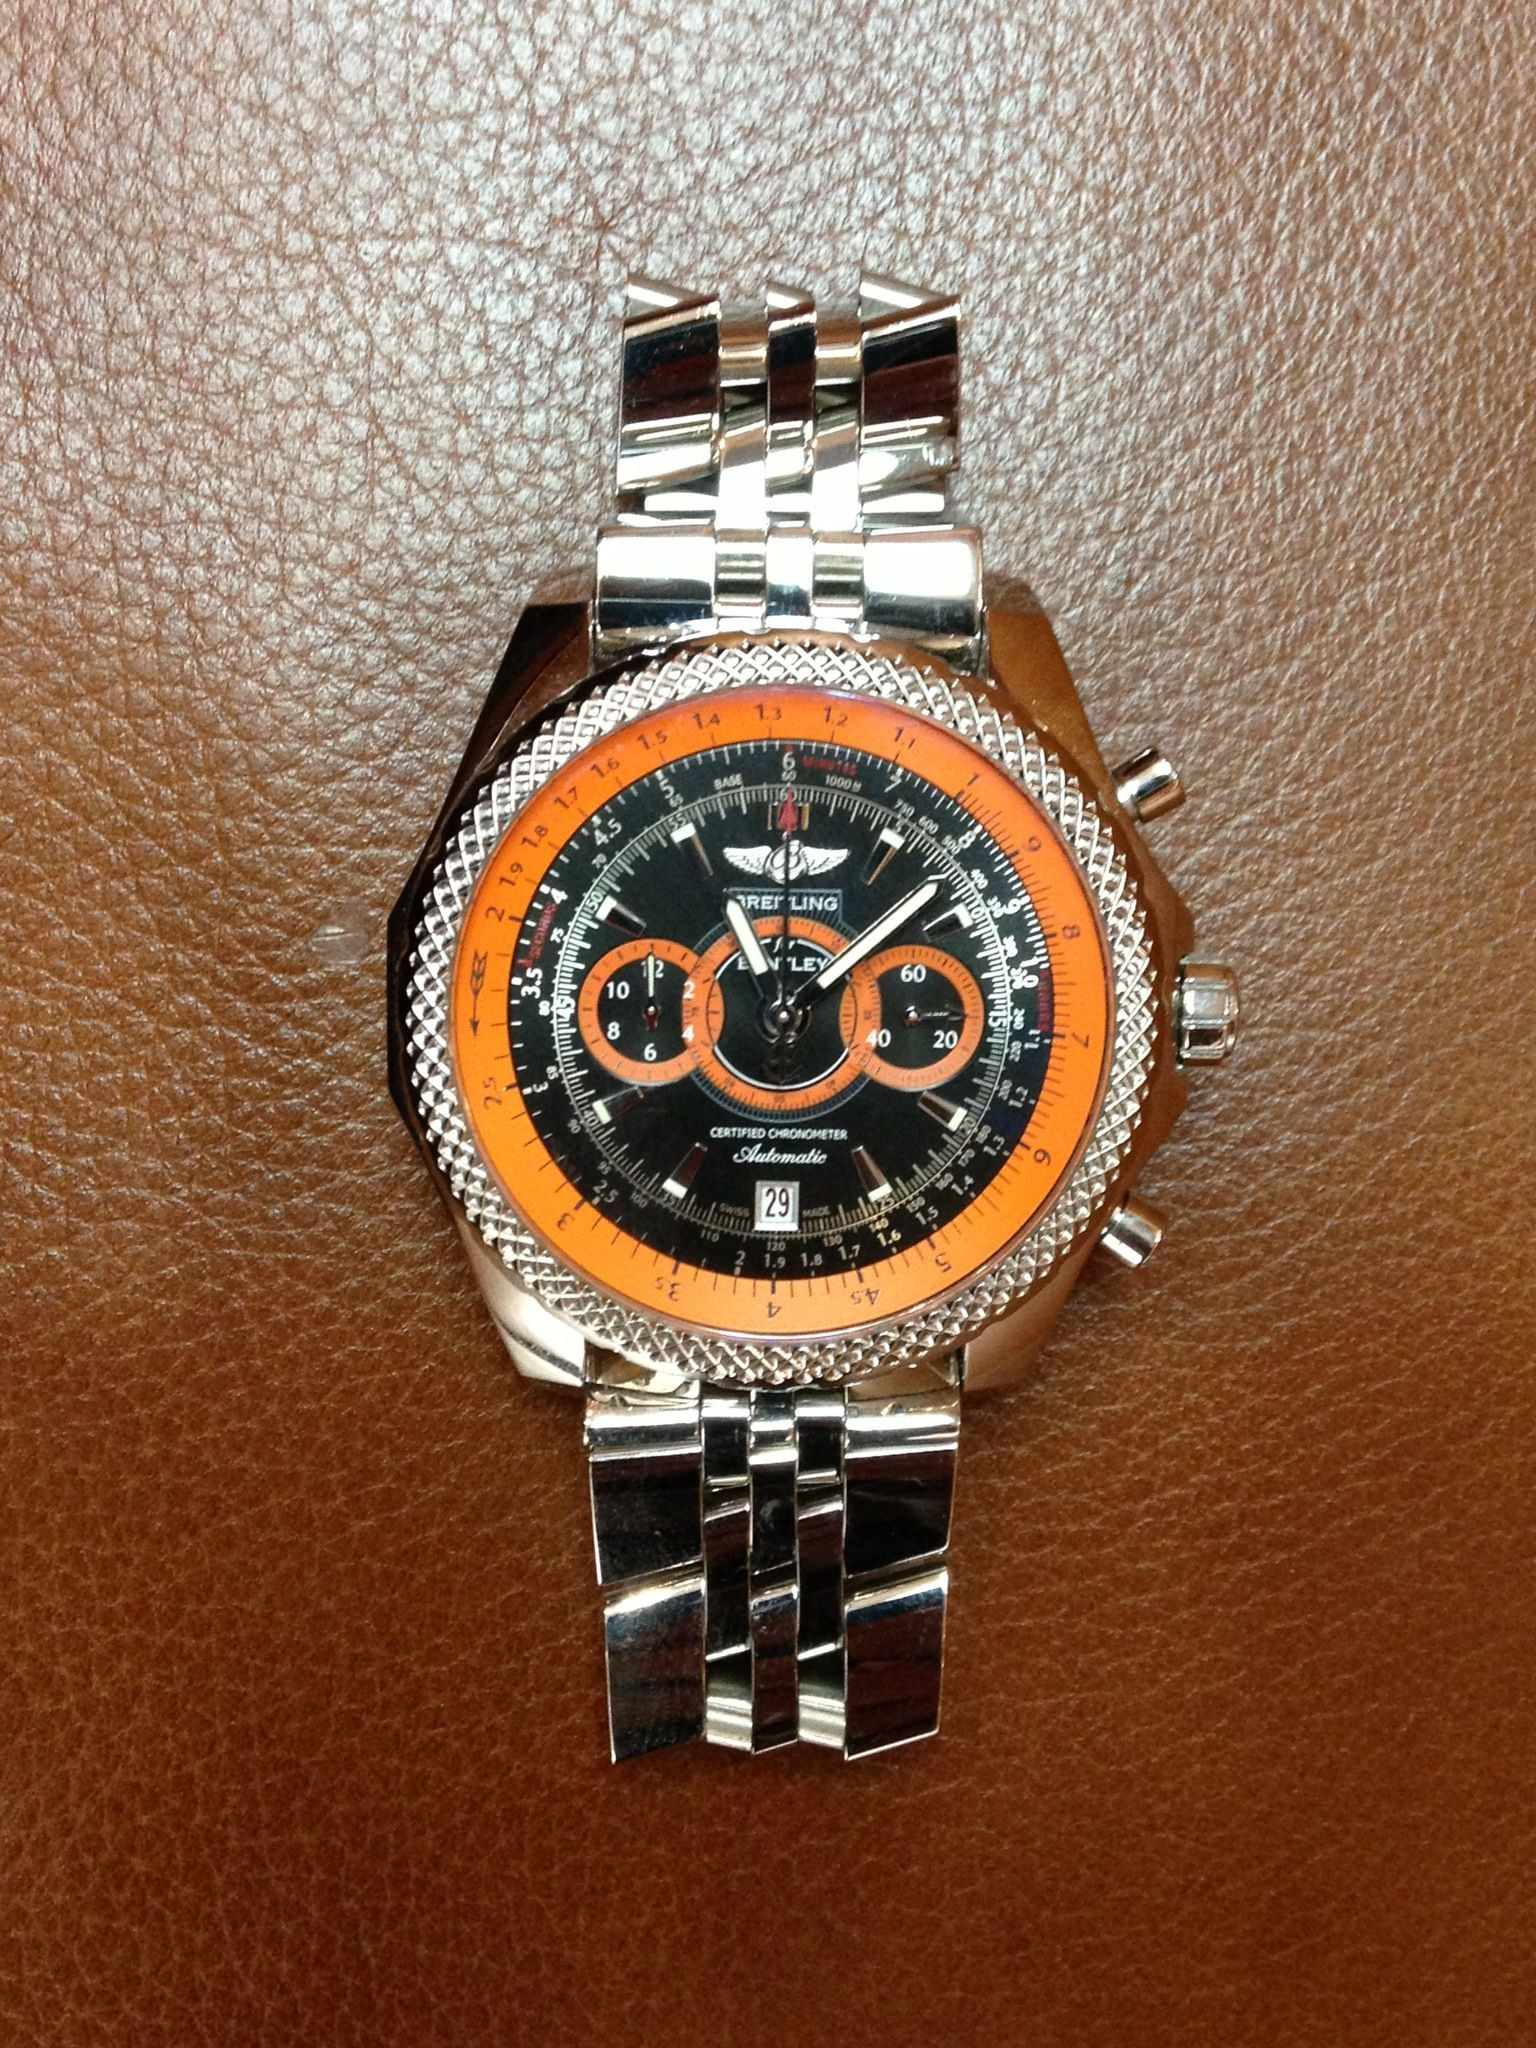 PART OF OUR COLLECTION- Breitling Supersports watch